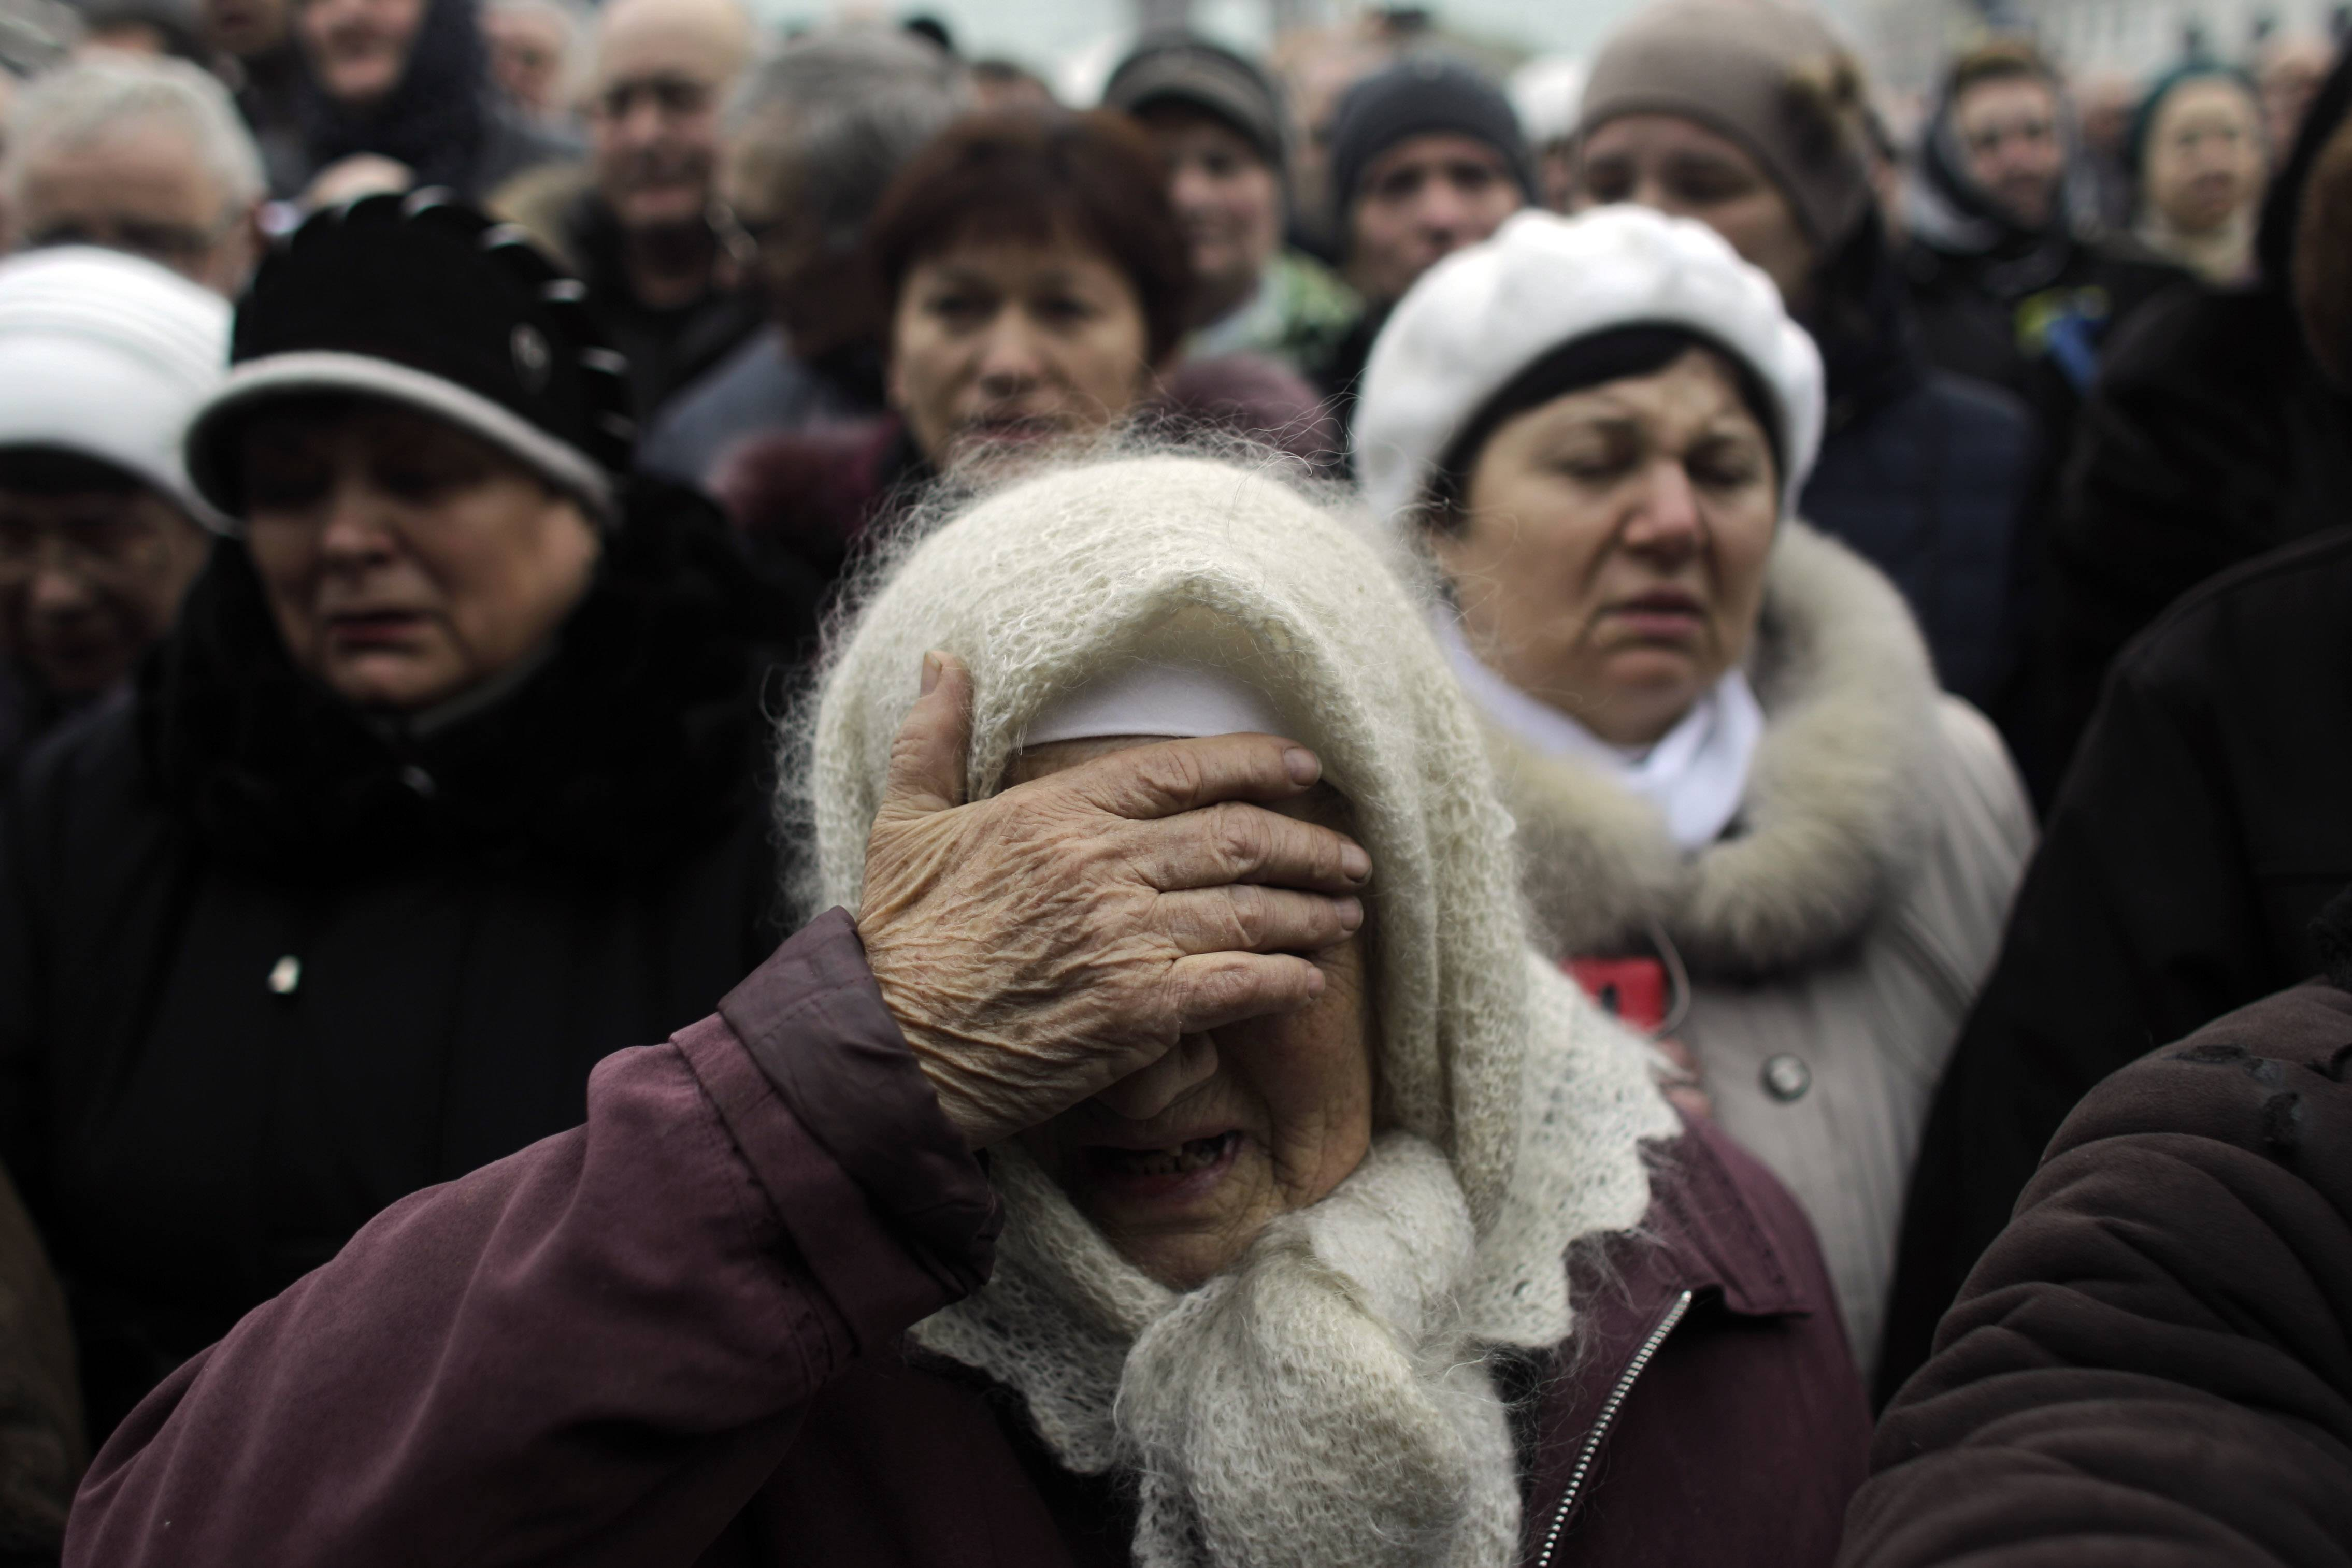 A woman reacts at a memorial for the people killed in clashes with the police at Kiev's Independence Square, the epicenter of the country's current unrest, Ukraine, Tuesday. The Ukrainian parliament on Tuesday delayed the formation of a new government, reflecting political tensions and economic challenges following the ouster of the Russia-backed president.